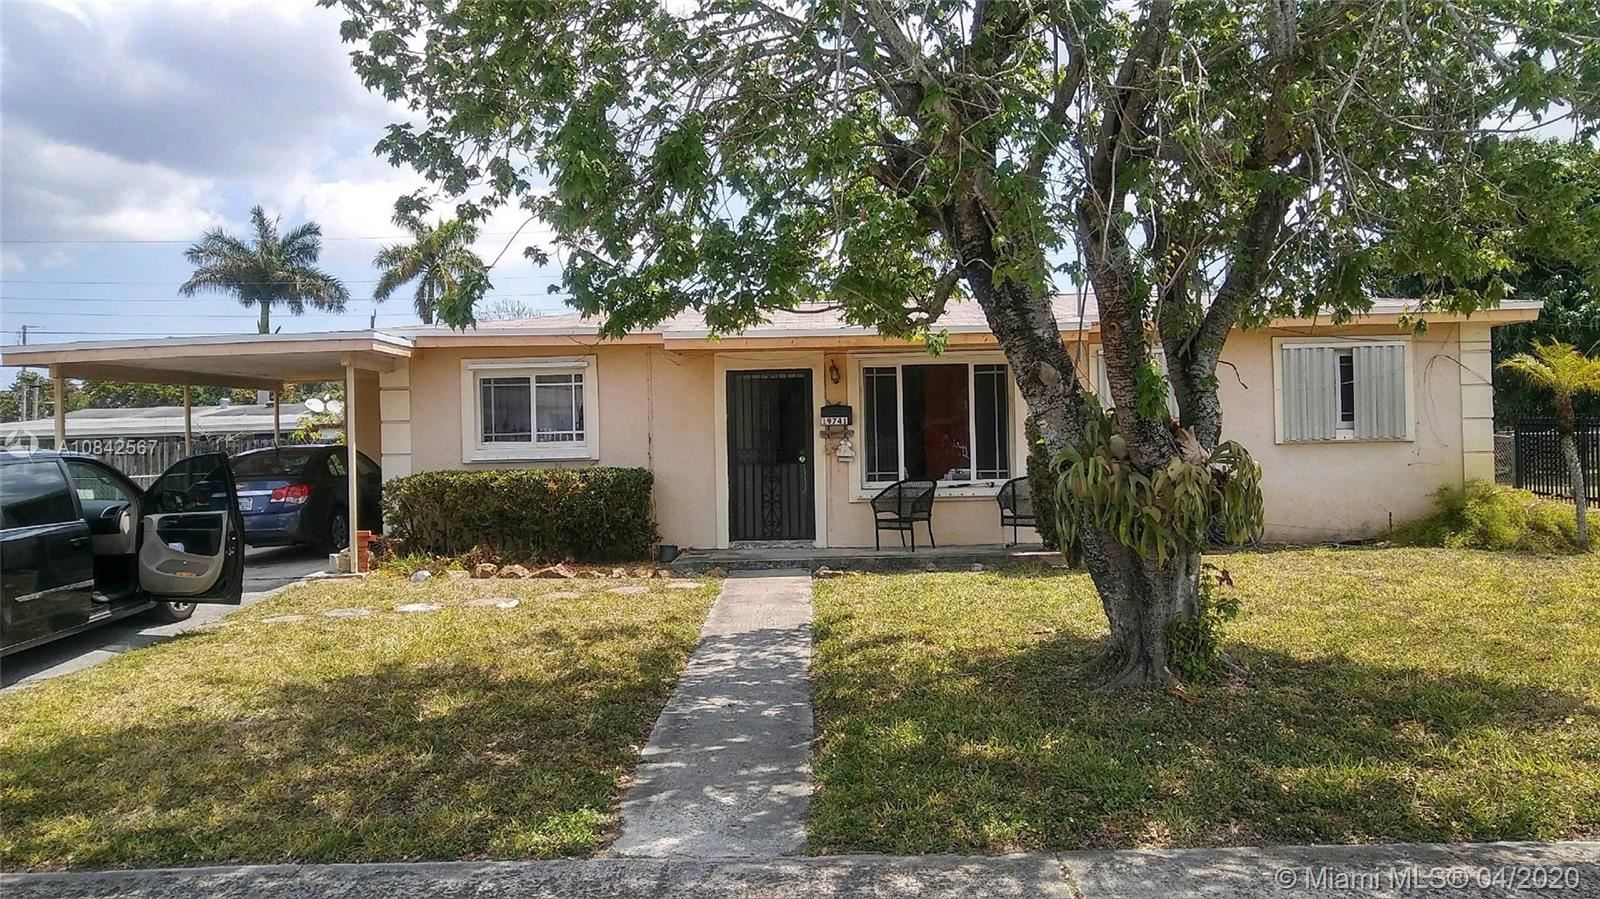 19741 NW 40th Ave, Miami Gardens, FL 33055 - #: A10842567